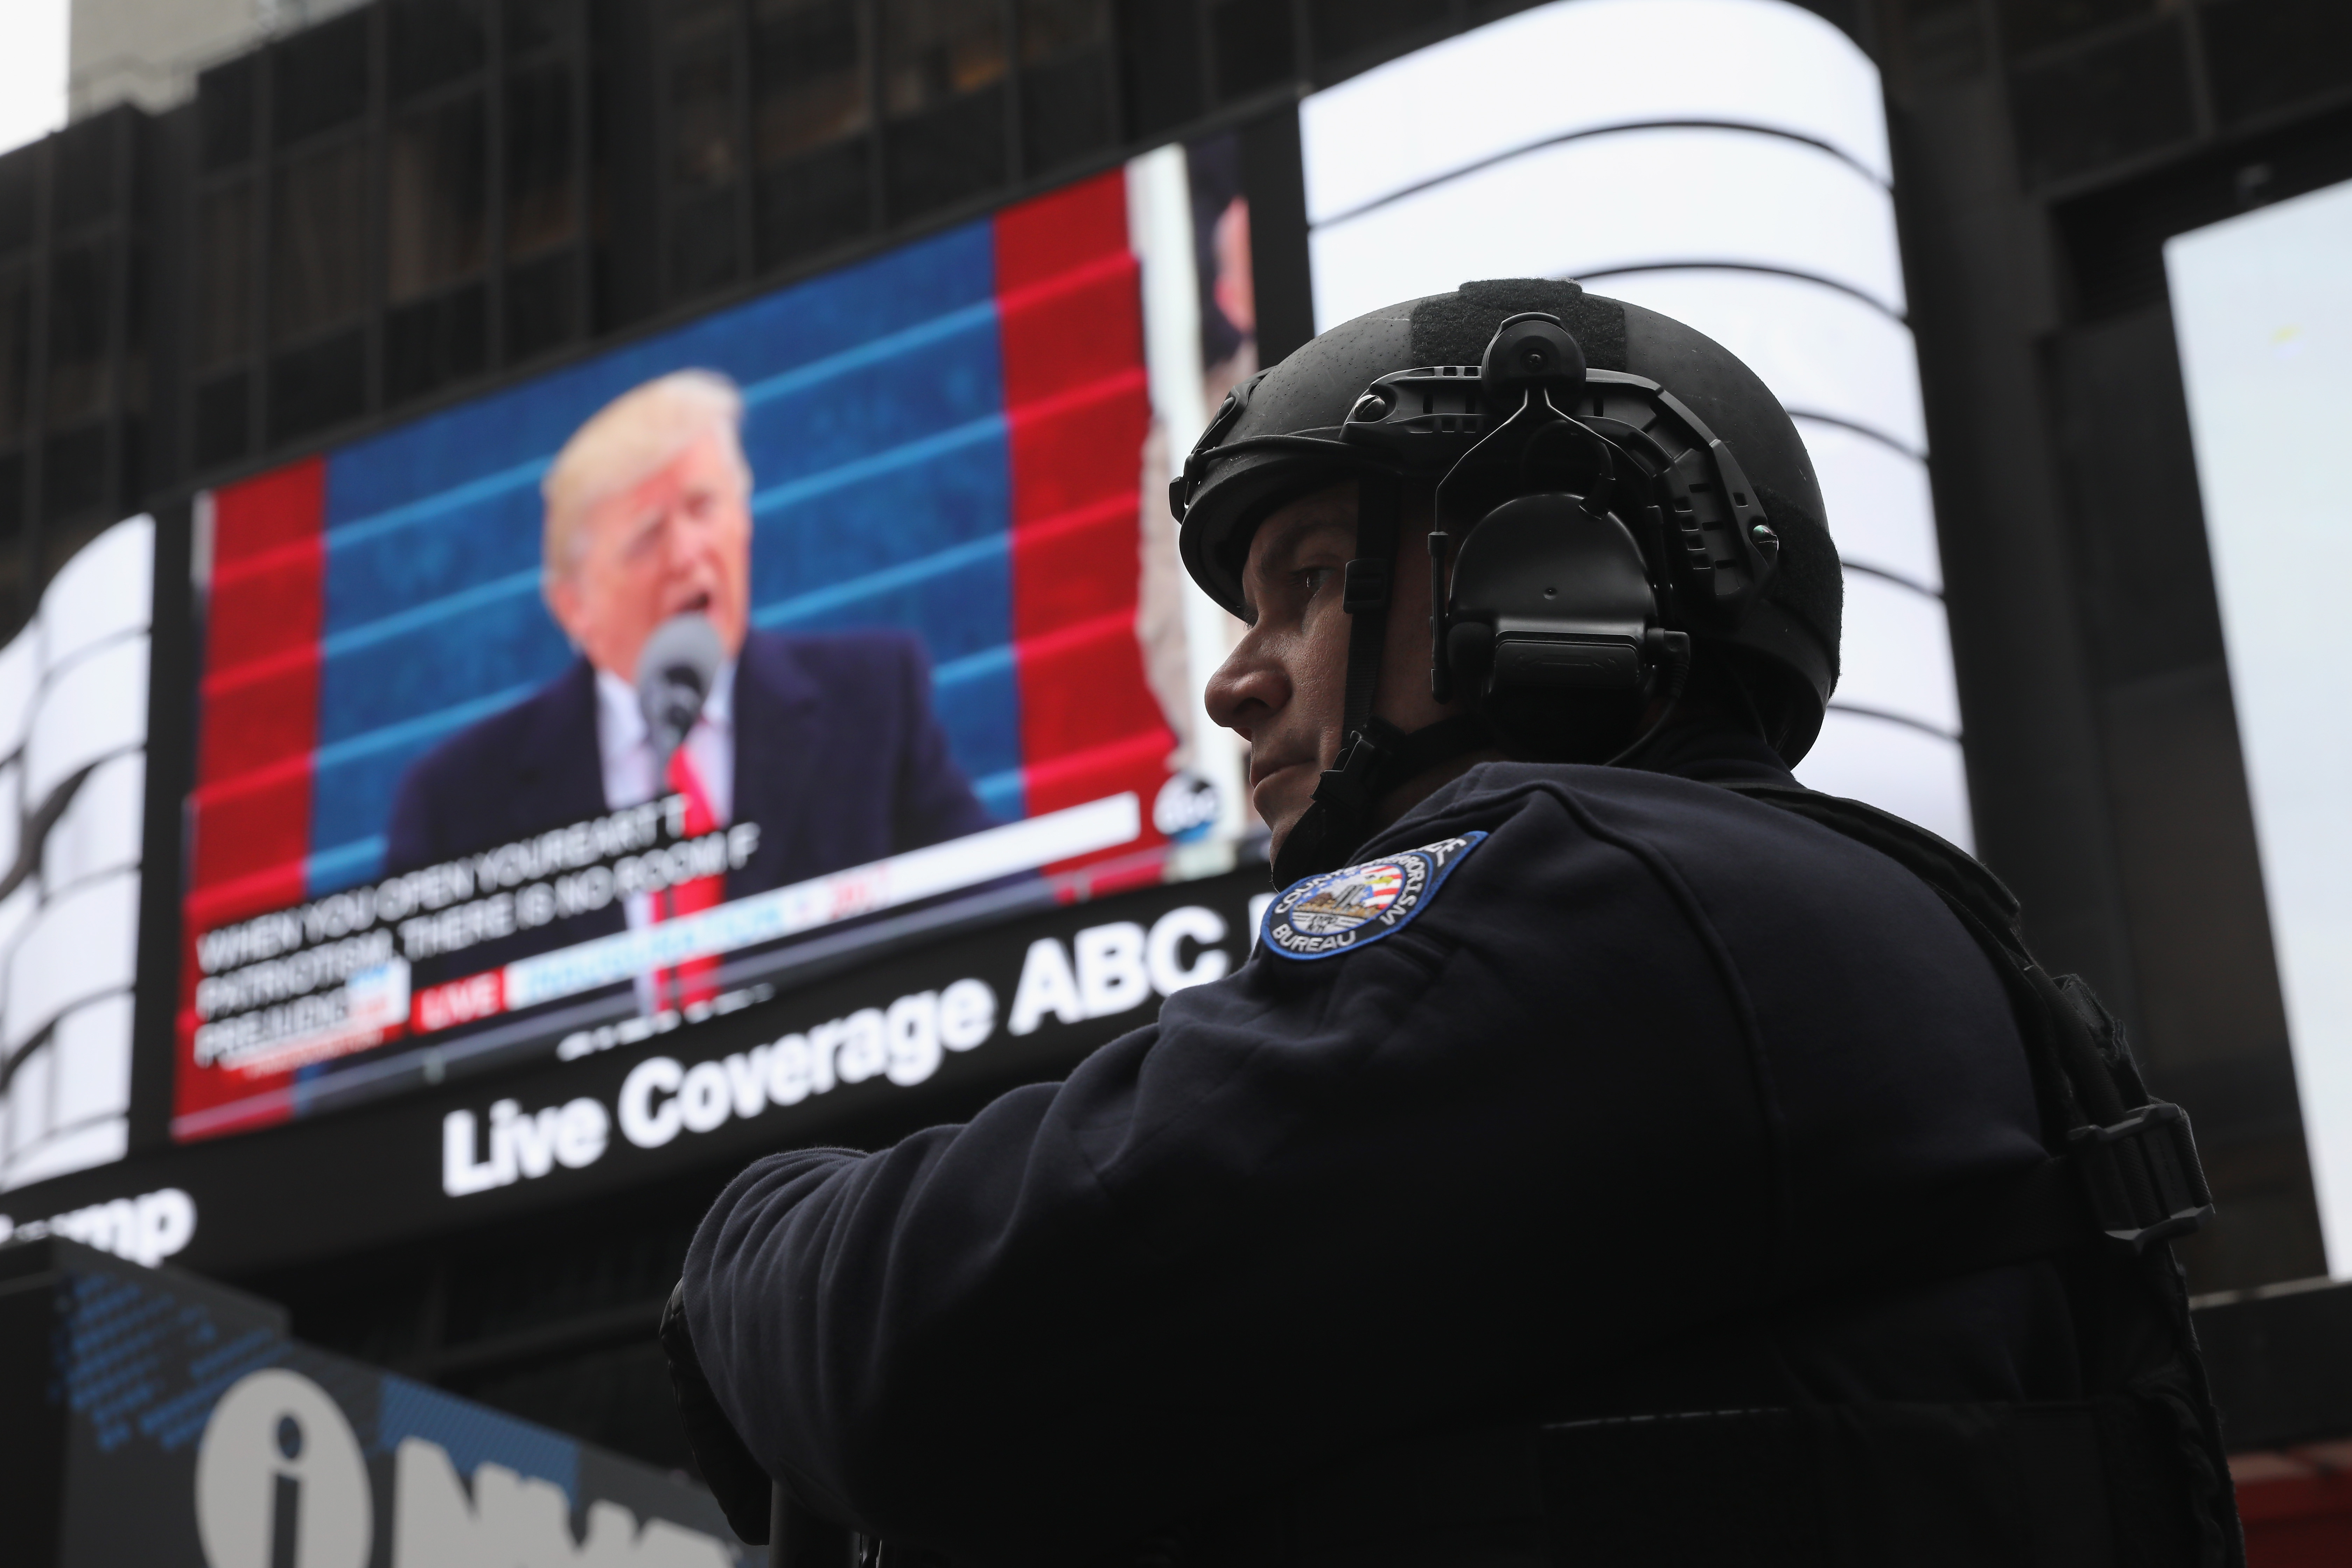 """Media scholar on Trump TV: """"This is Orwellian, and it's happening right now, right here"""""""